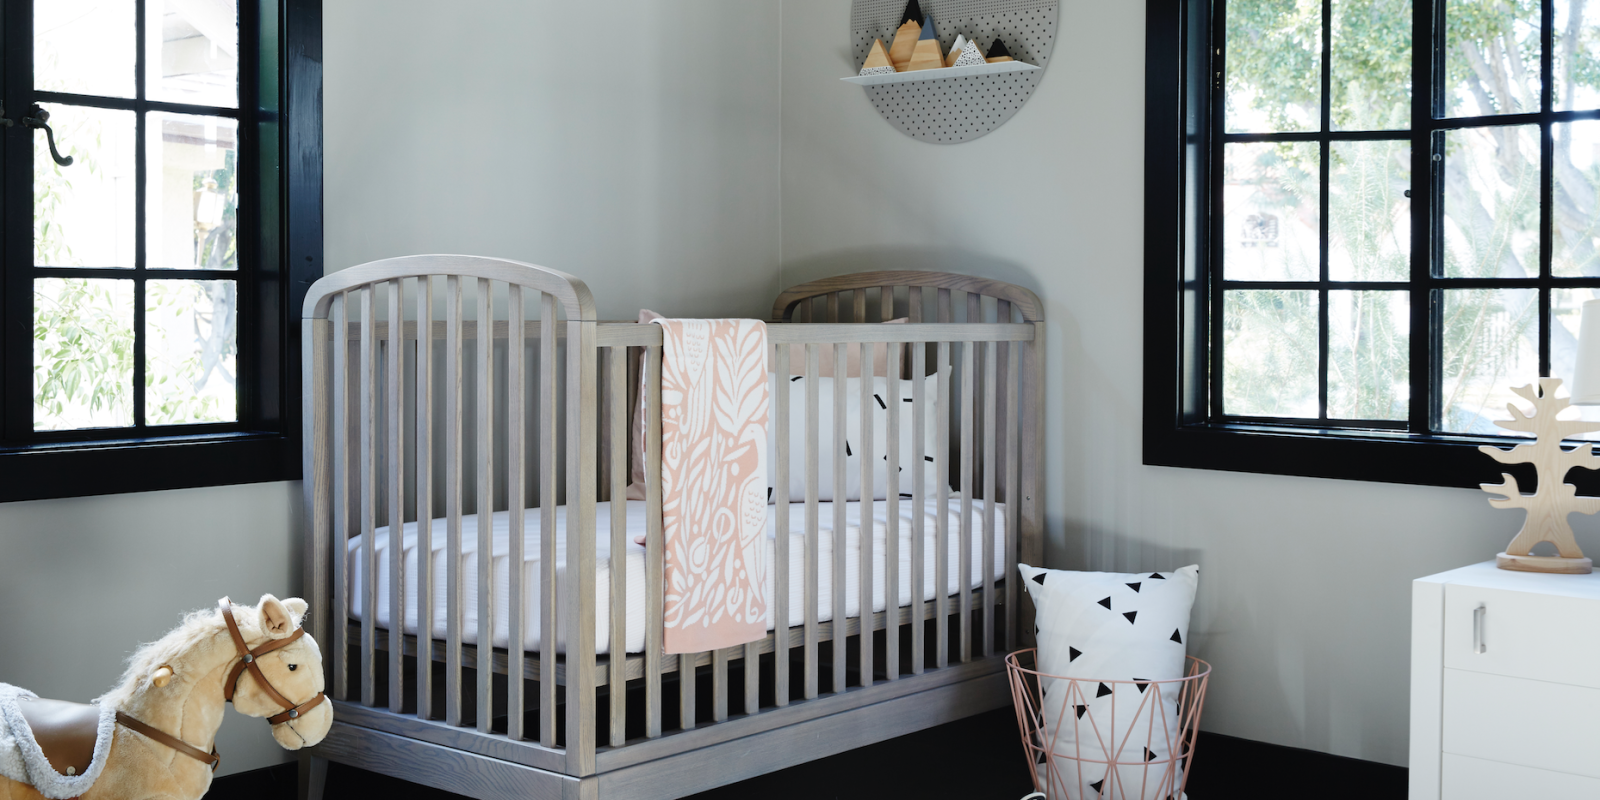 7 cute baby girl rooms nursery decorating ideas for baby girls7 baby girl nursery ideas that are sweet yet elegant